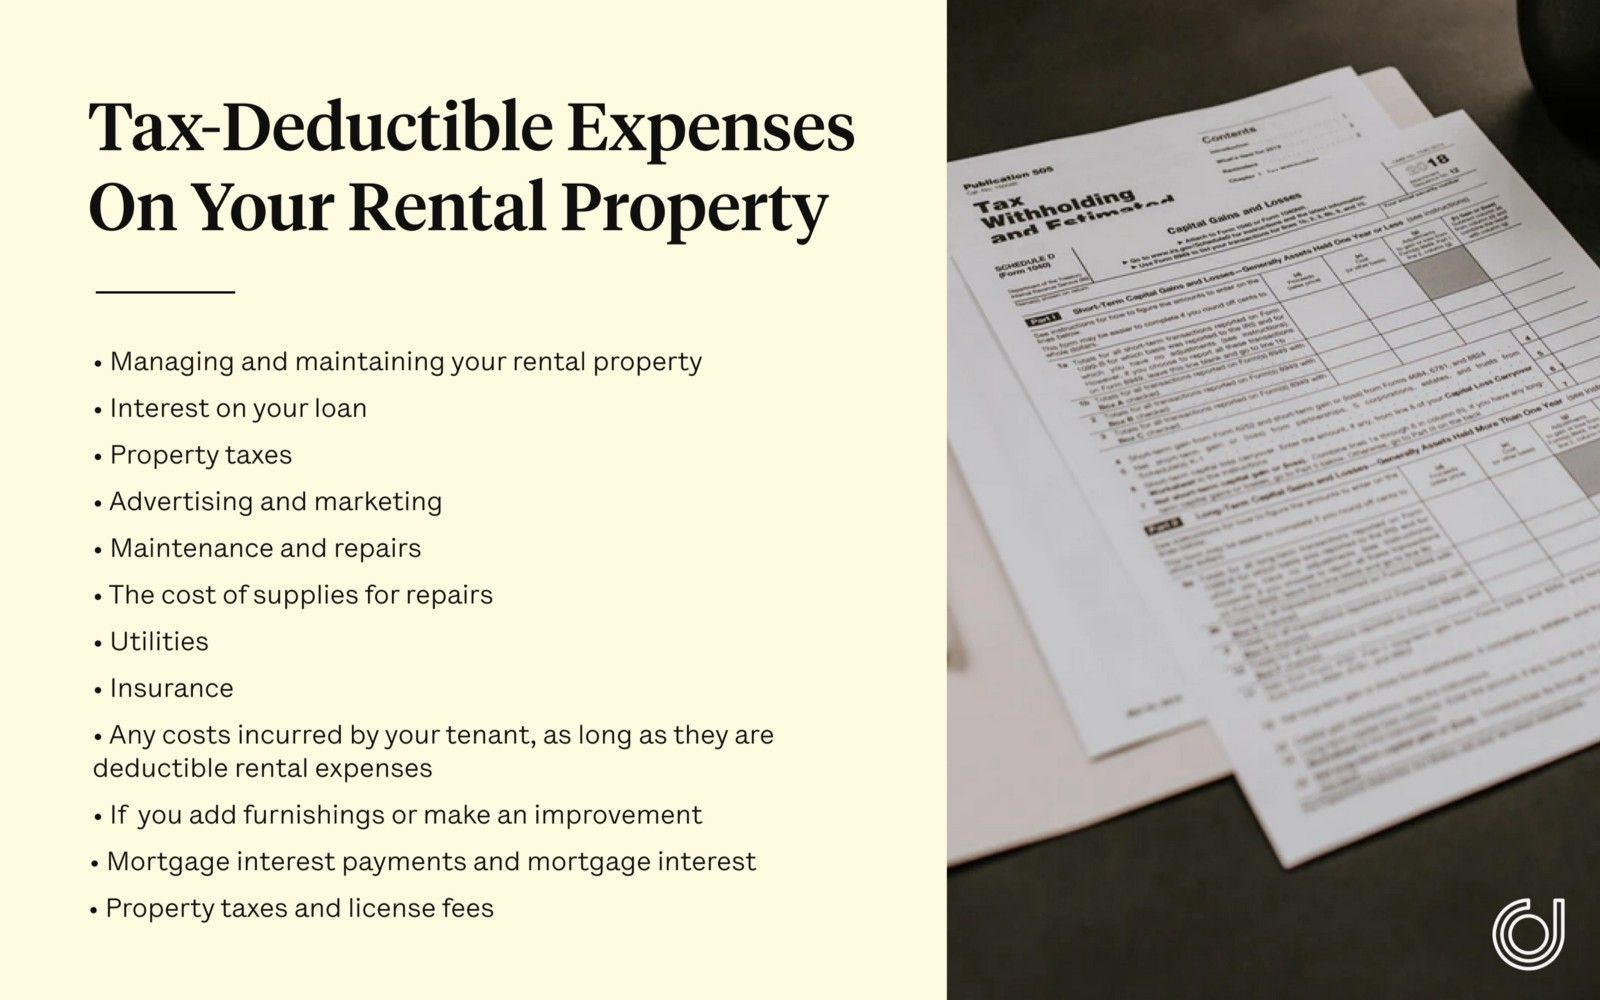 tax deductible expenses on your rental property